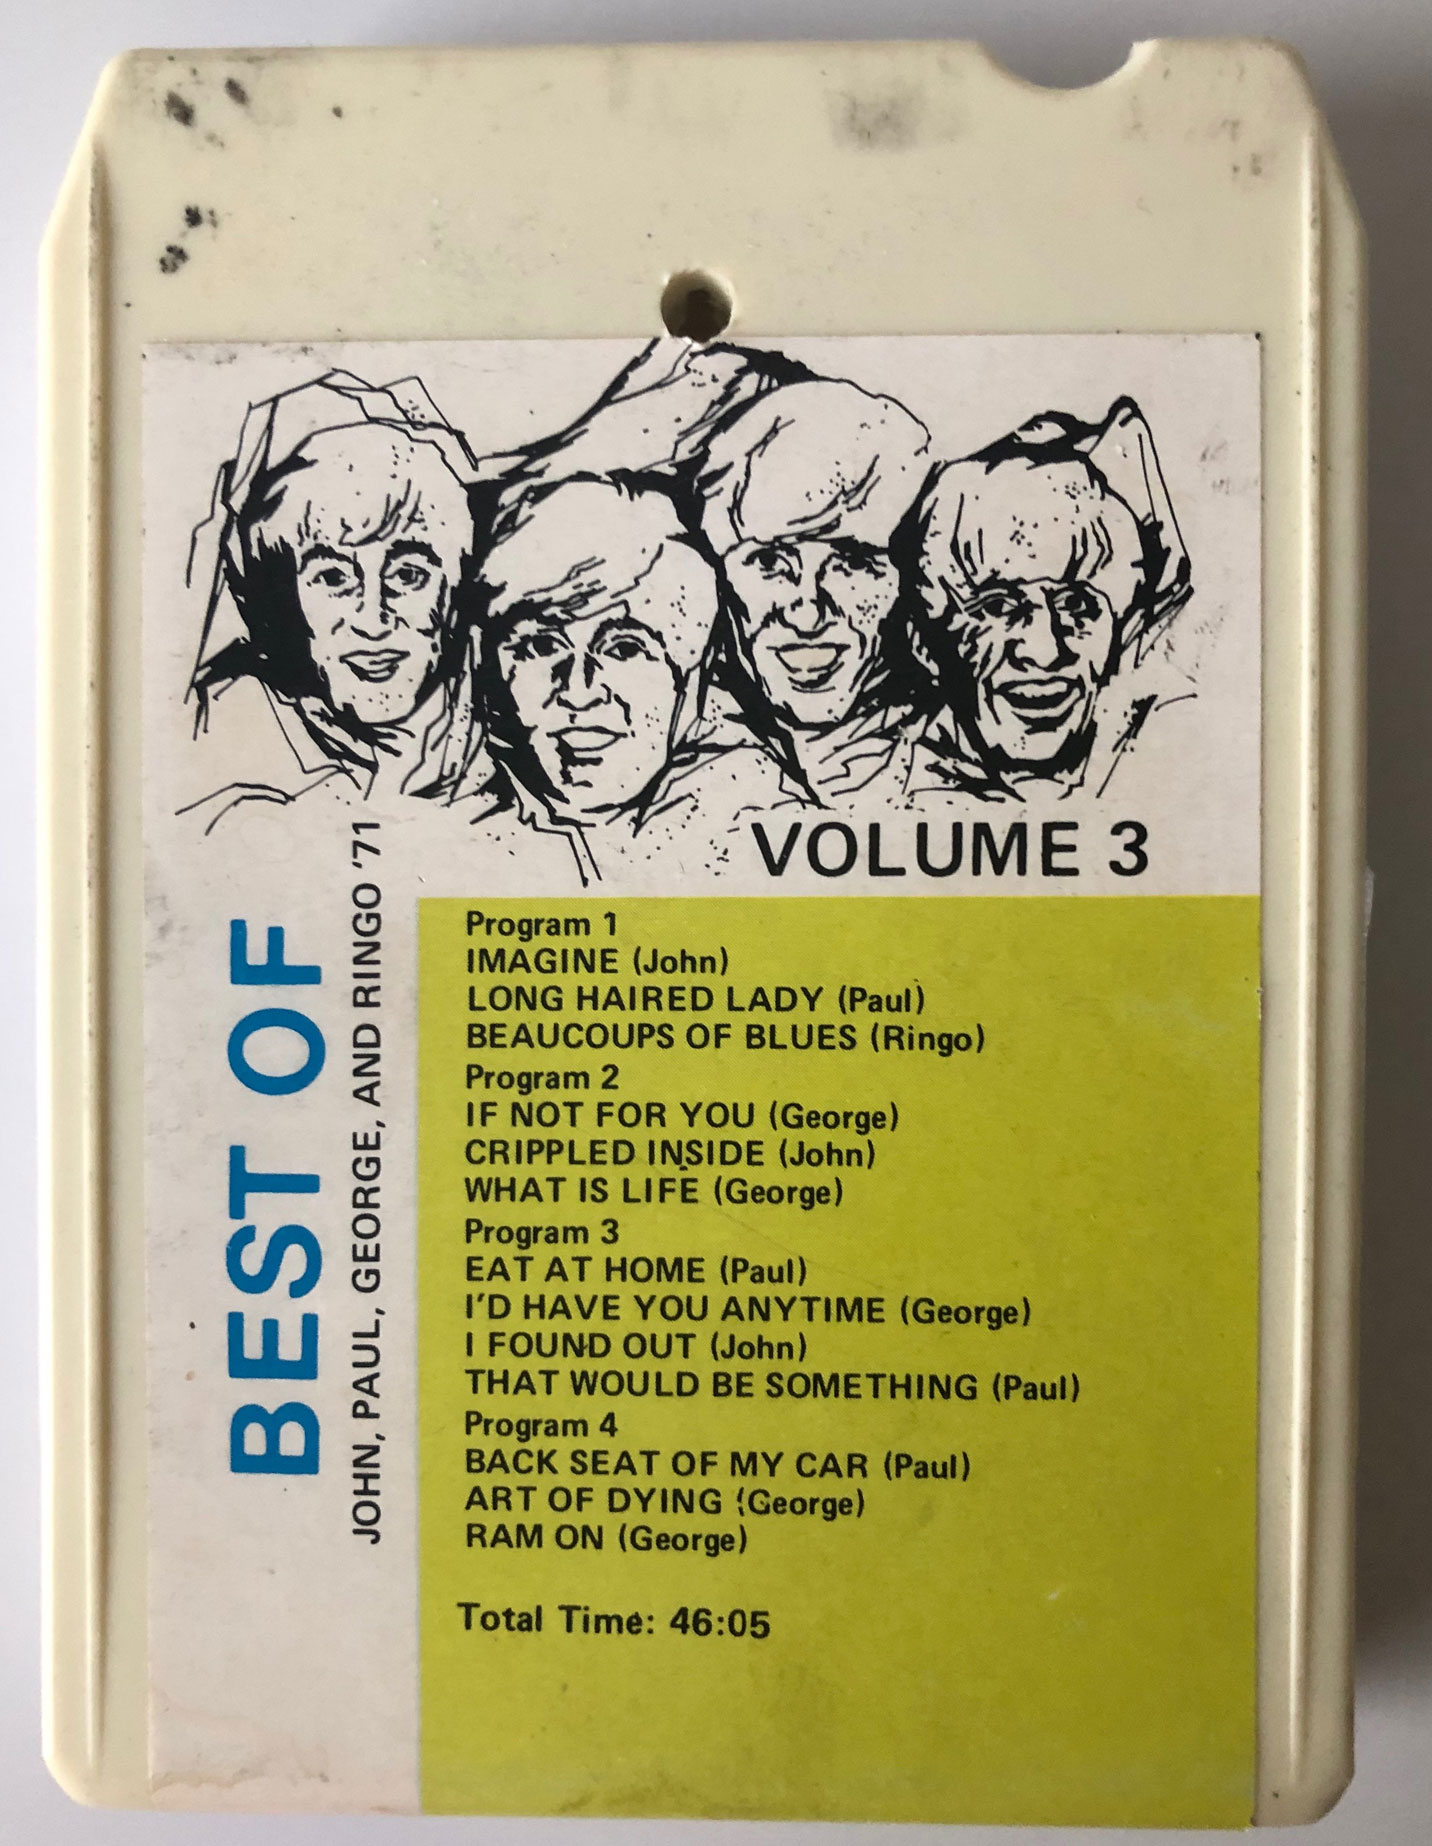 8-Trackin': Solo Beatles Bootleg Compilations (1971) – Cherry Stereo